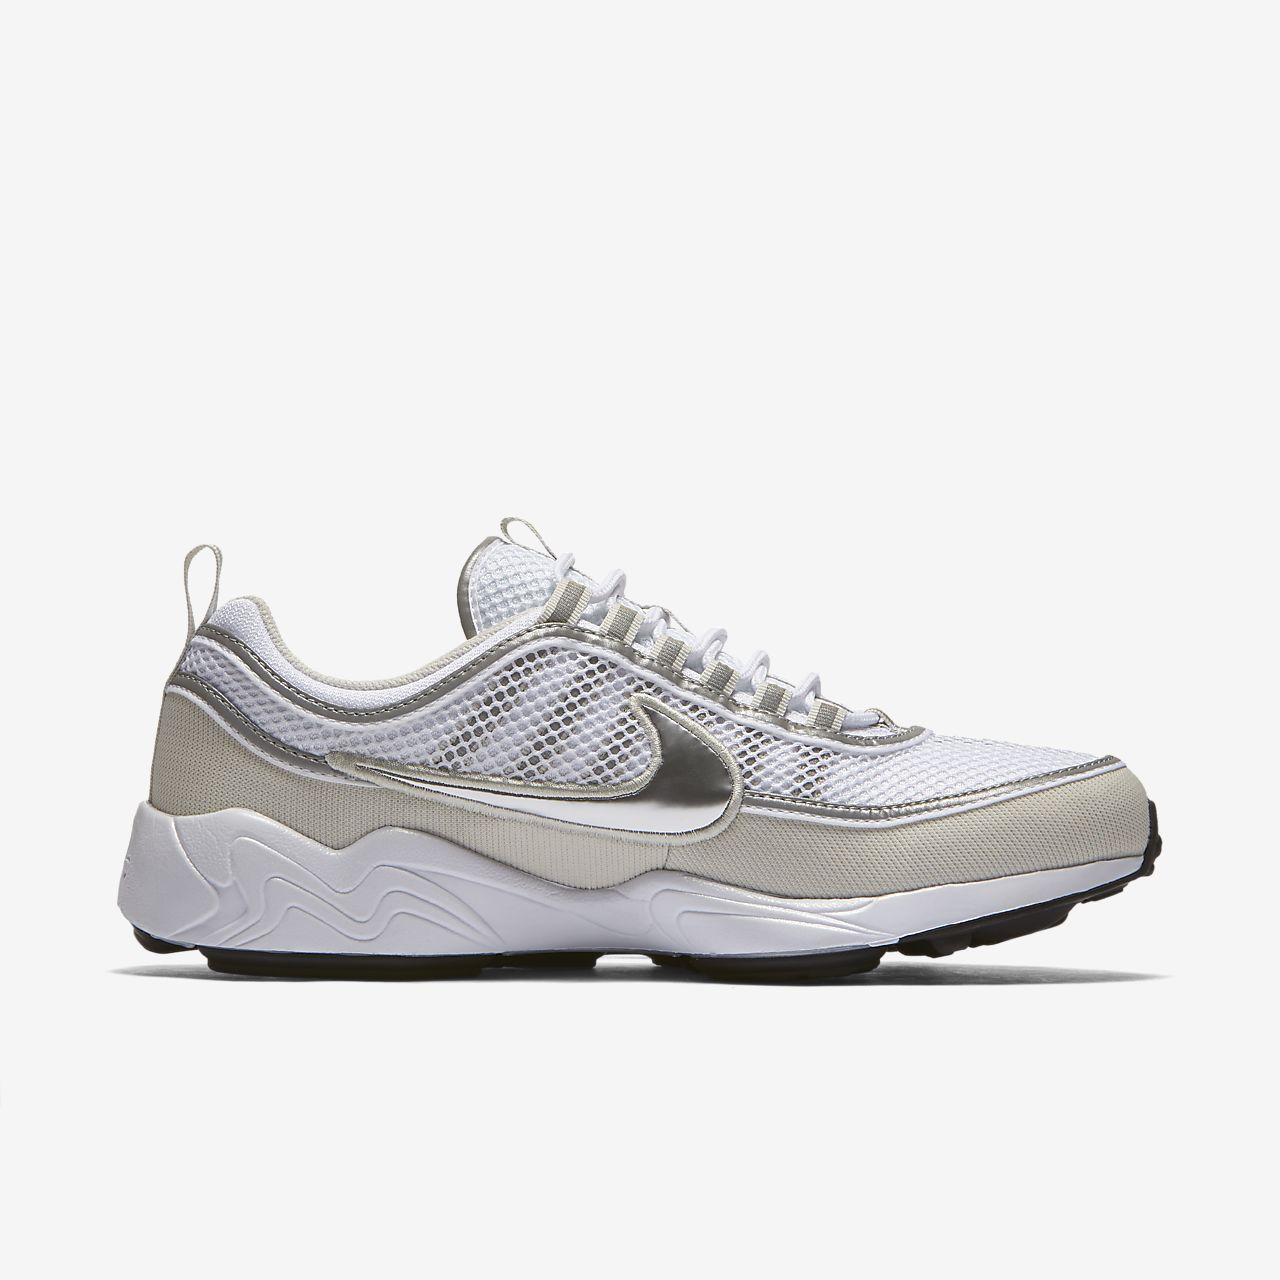 sale retailer be906 5cbc2 ... Chaussure Nike Air Zoom Spiridon  16 pour Homme